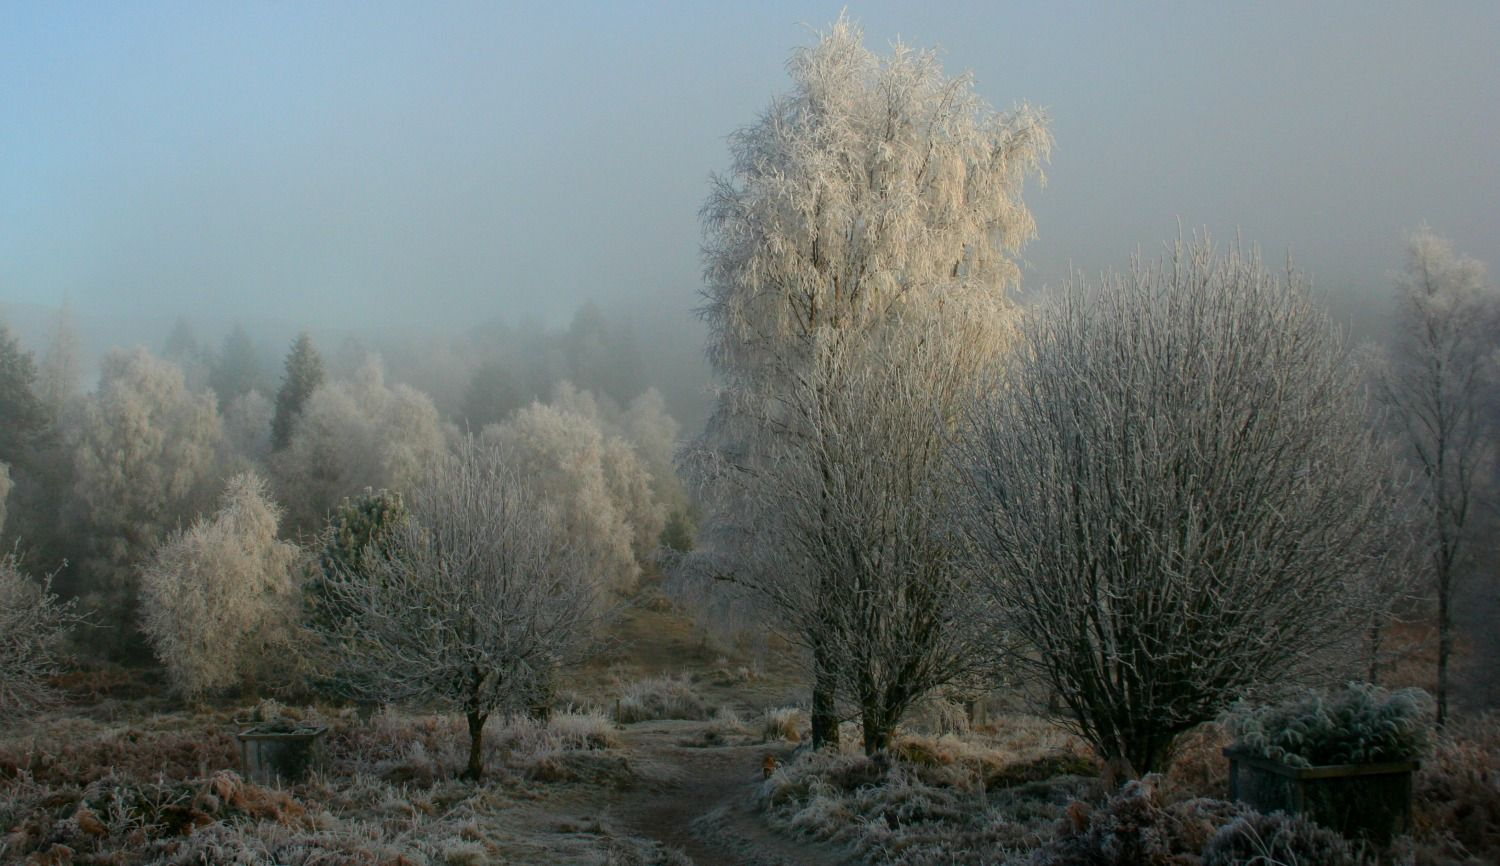 Top of the Knock Hill, Crieff, Perthshire in hard frost.